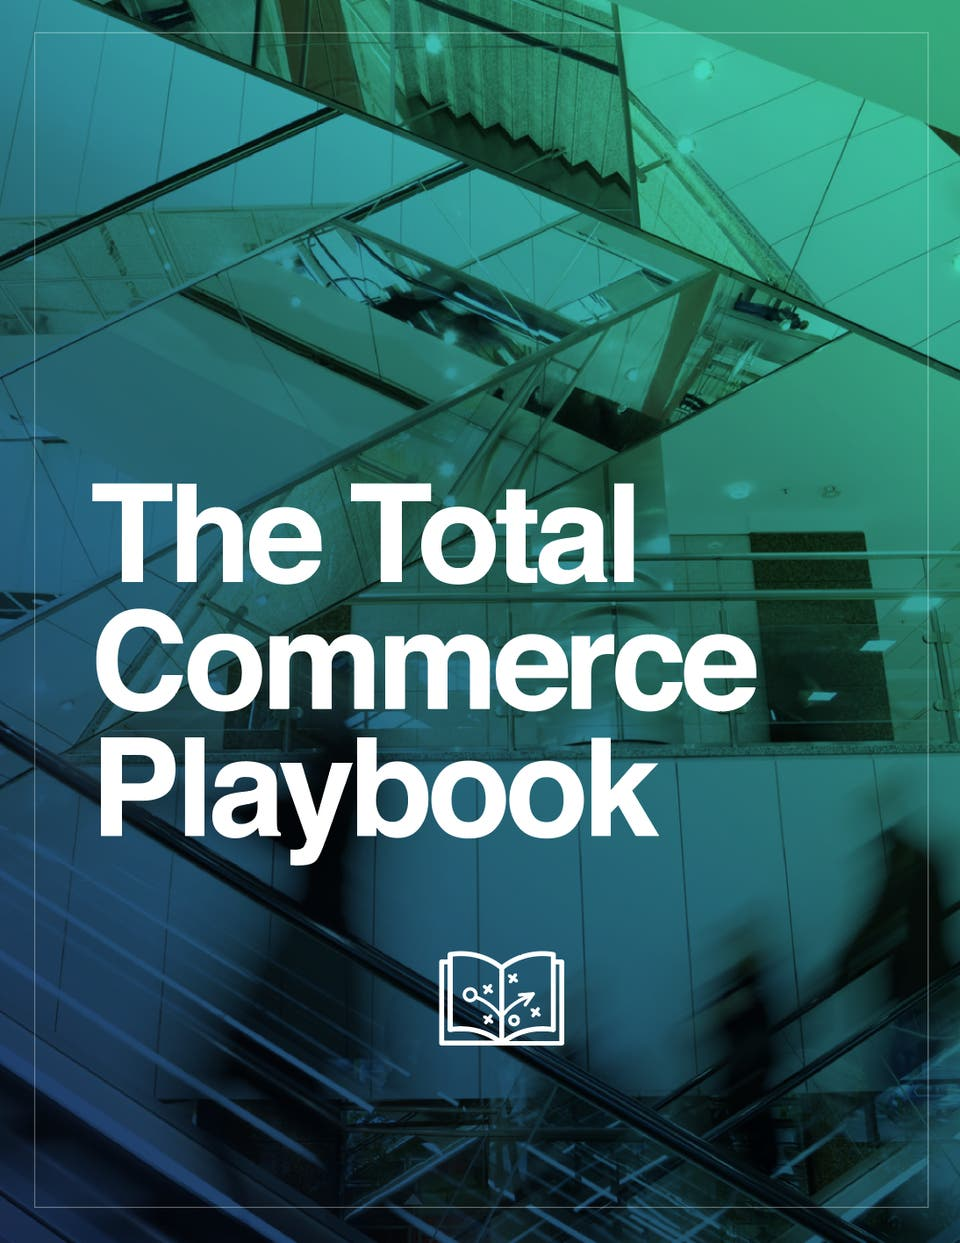 The Total Commerce Playbook